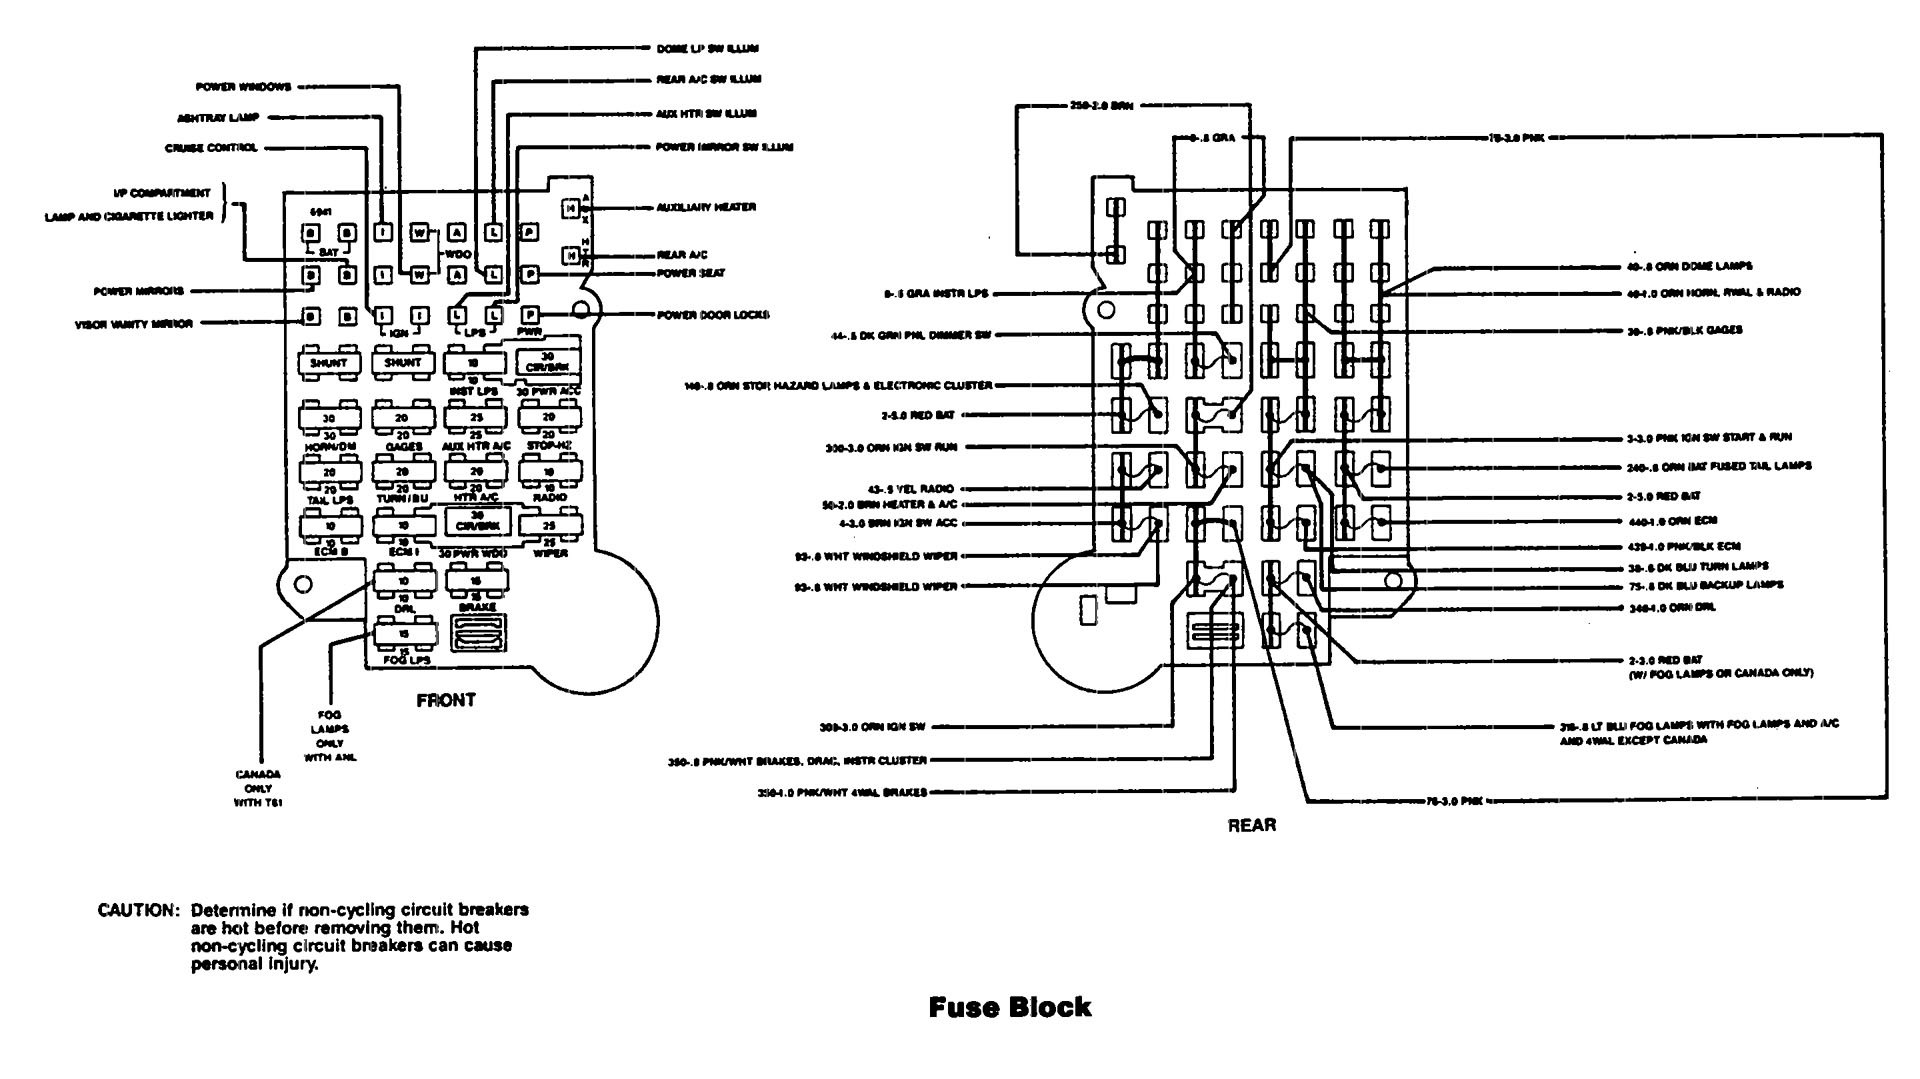 1990 Chevy K1500 Wiring Diagram Will Be A Thing 1988 Blazer Engine Imageresizertool Com 1500 Radio